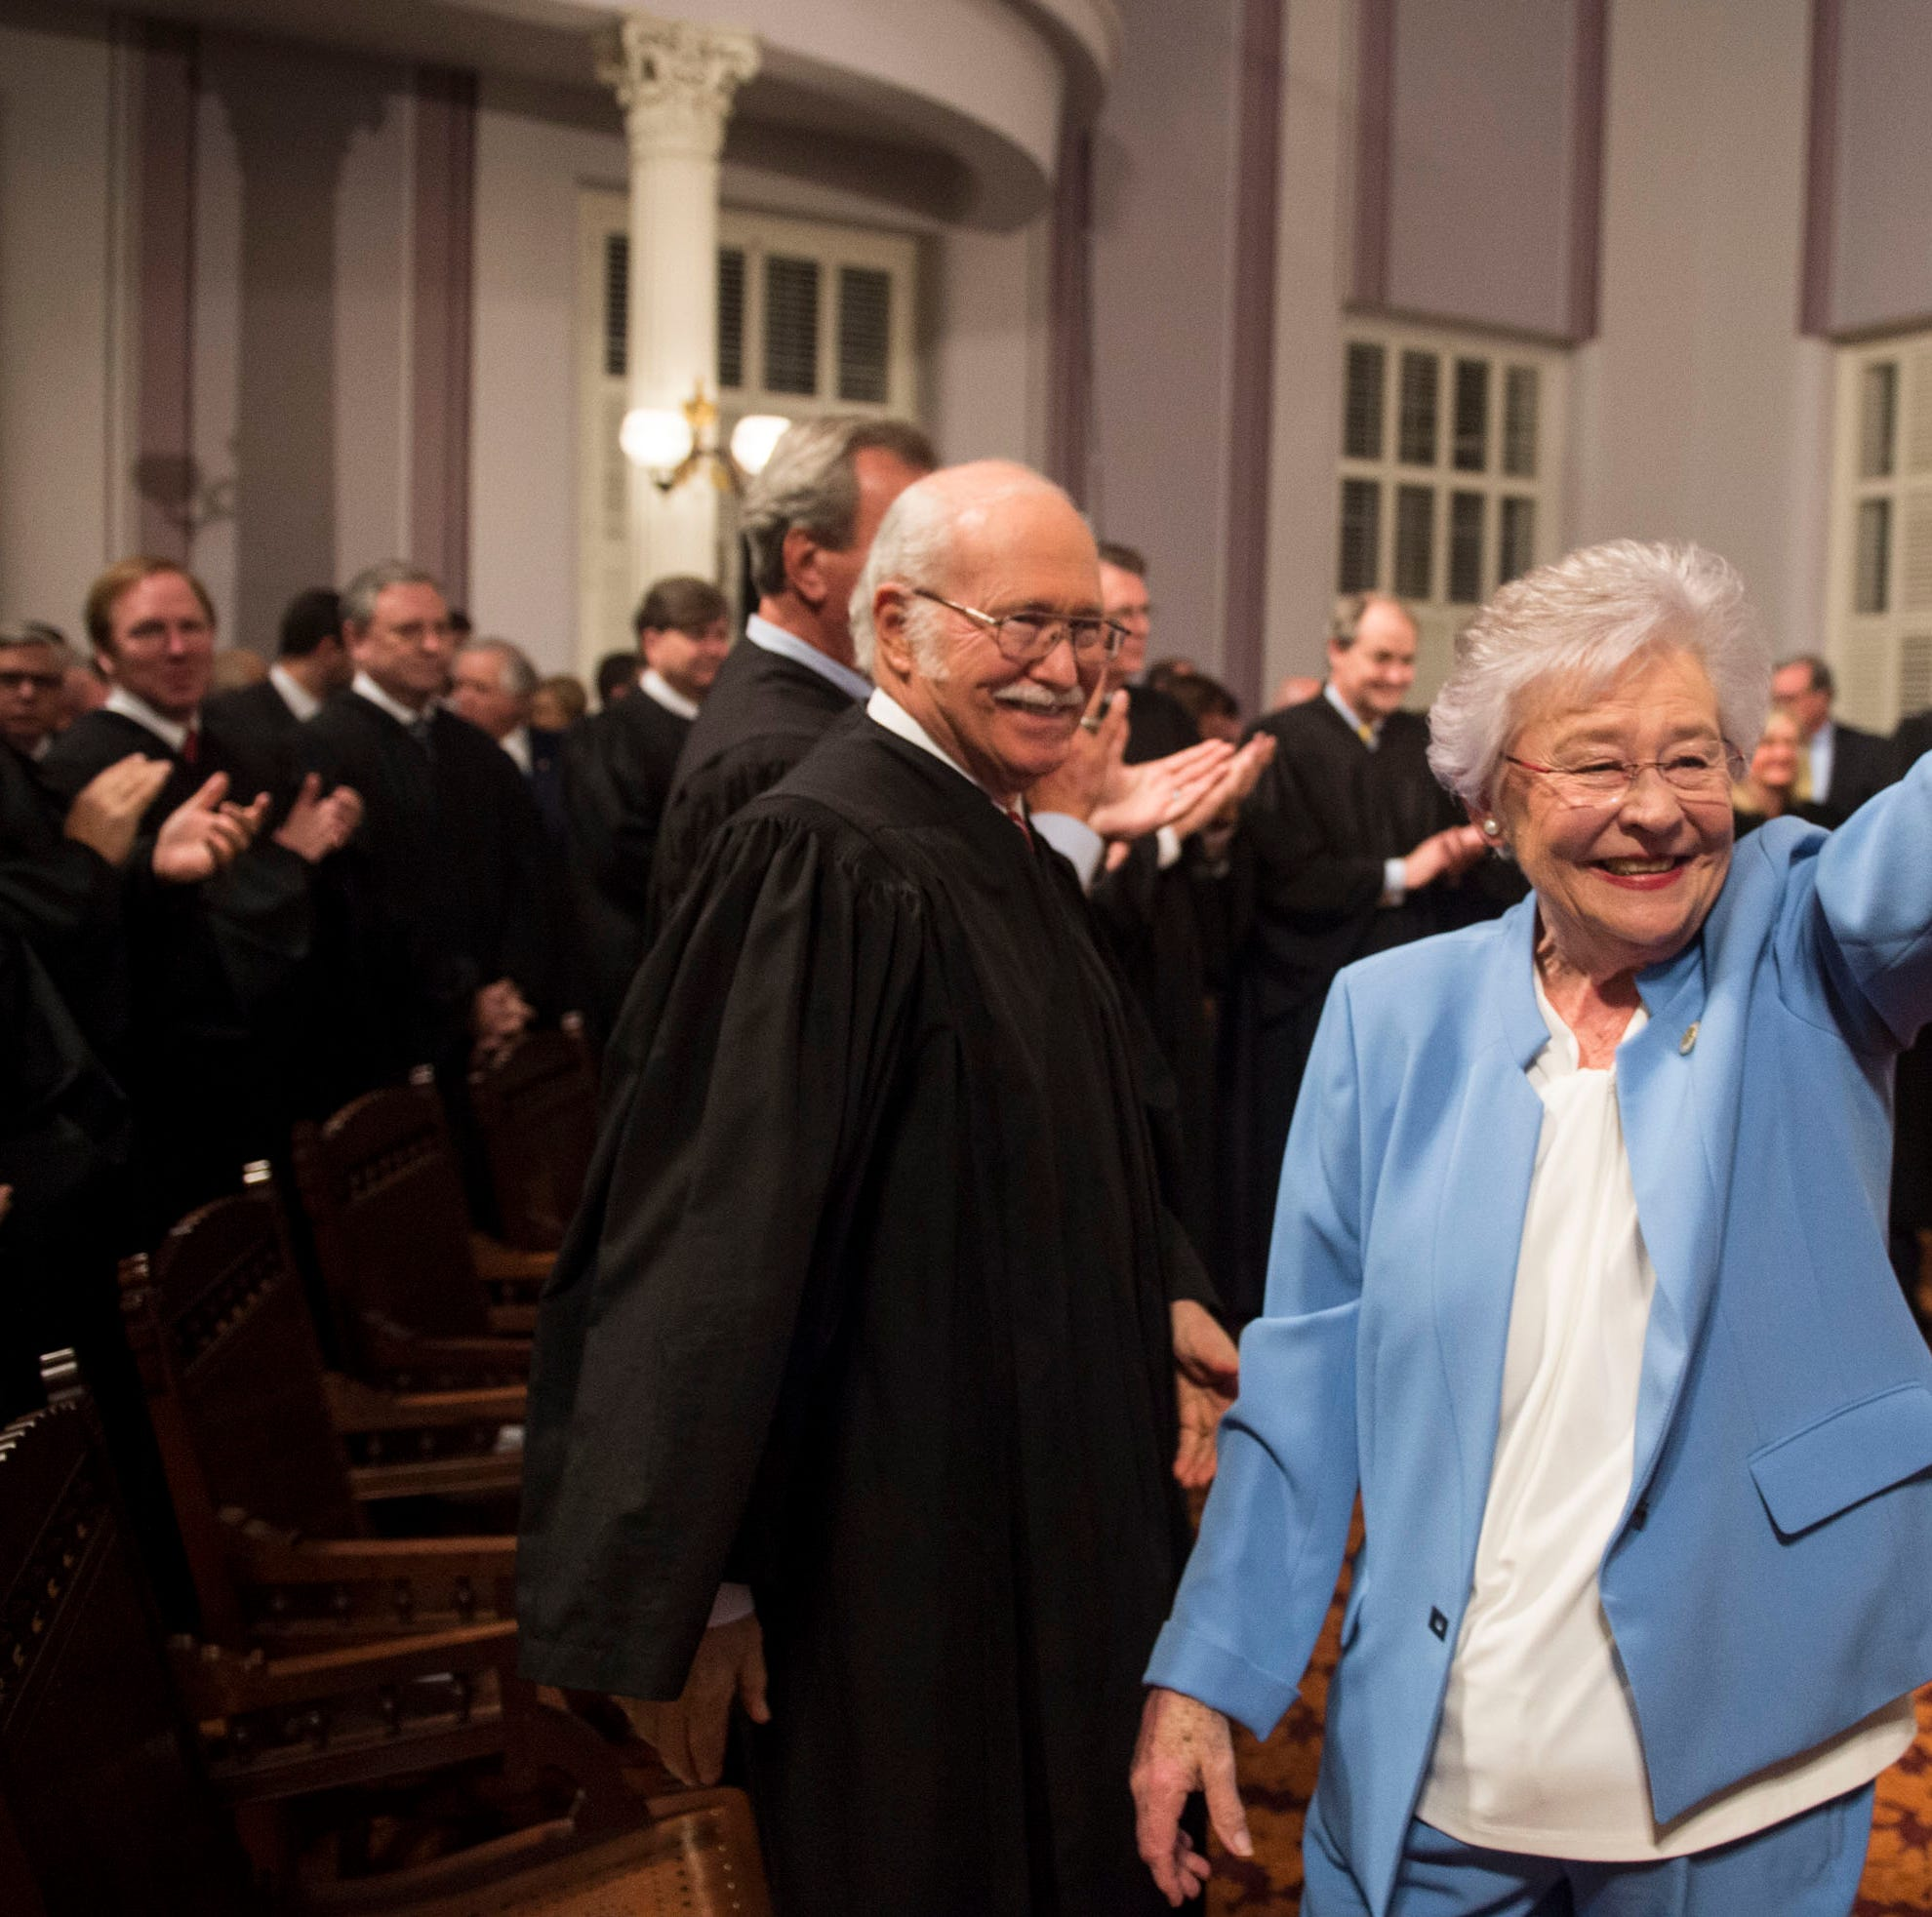 Where does Alabama governor Kay Ivey stand on abortion, adoption, birth control?